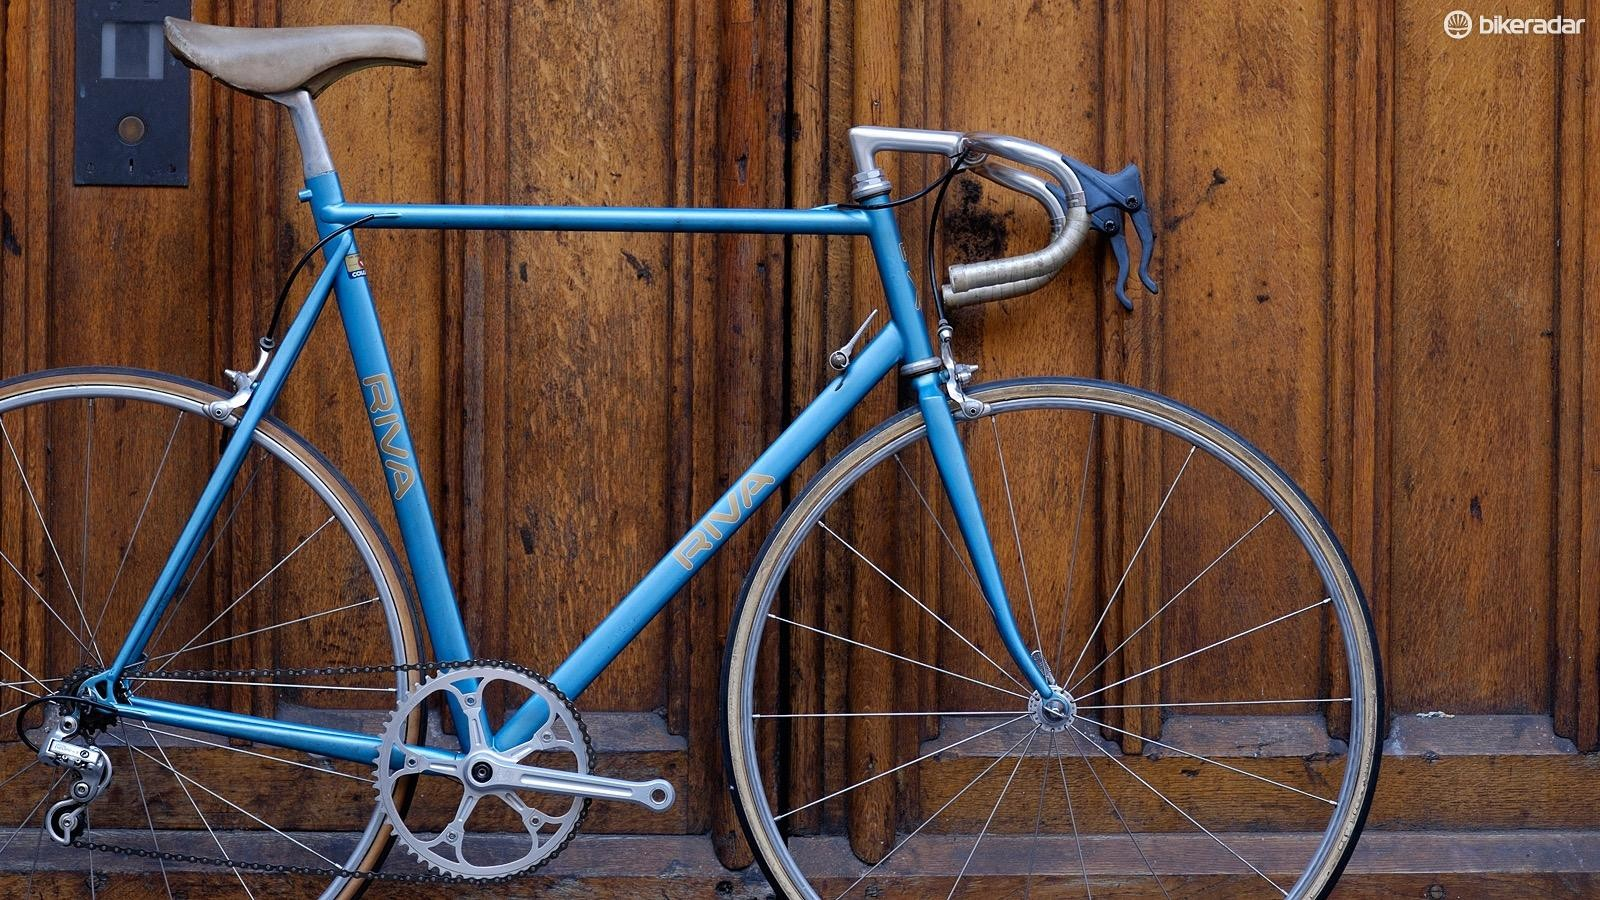 This custom Riva time trial bike has been sitting in a window near BikeRadar HQ for months now